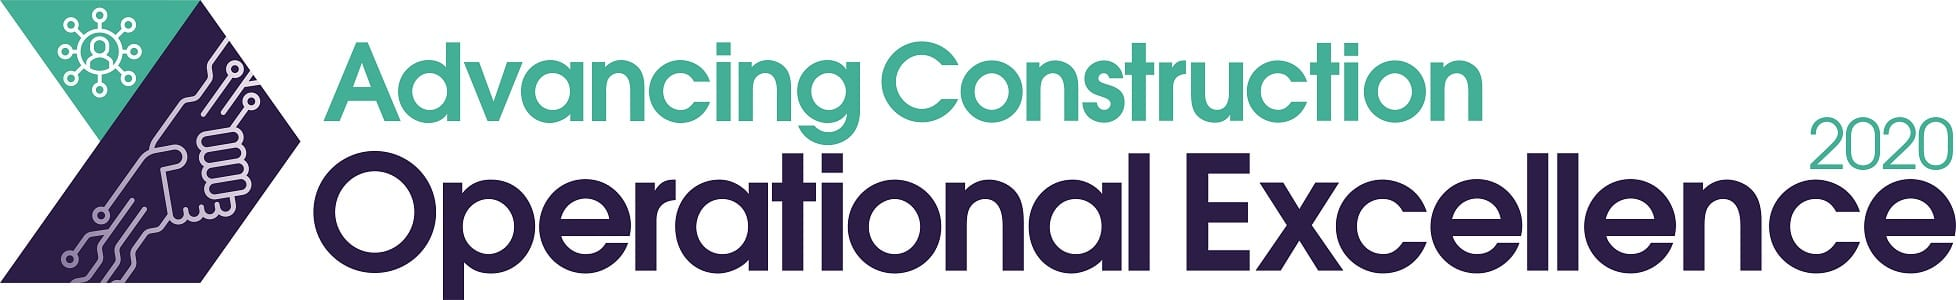 HW190830 Advancing Construction Operational Excellence 2020 logo_FINAL 300